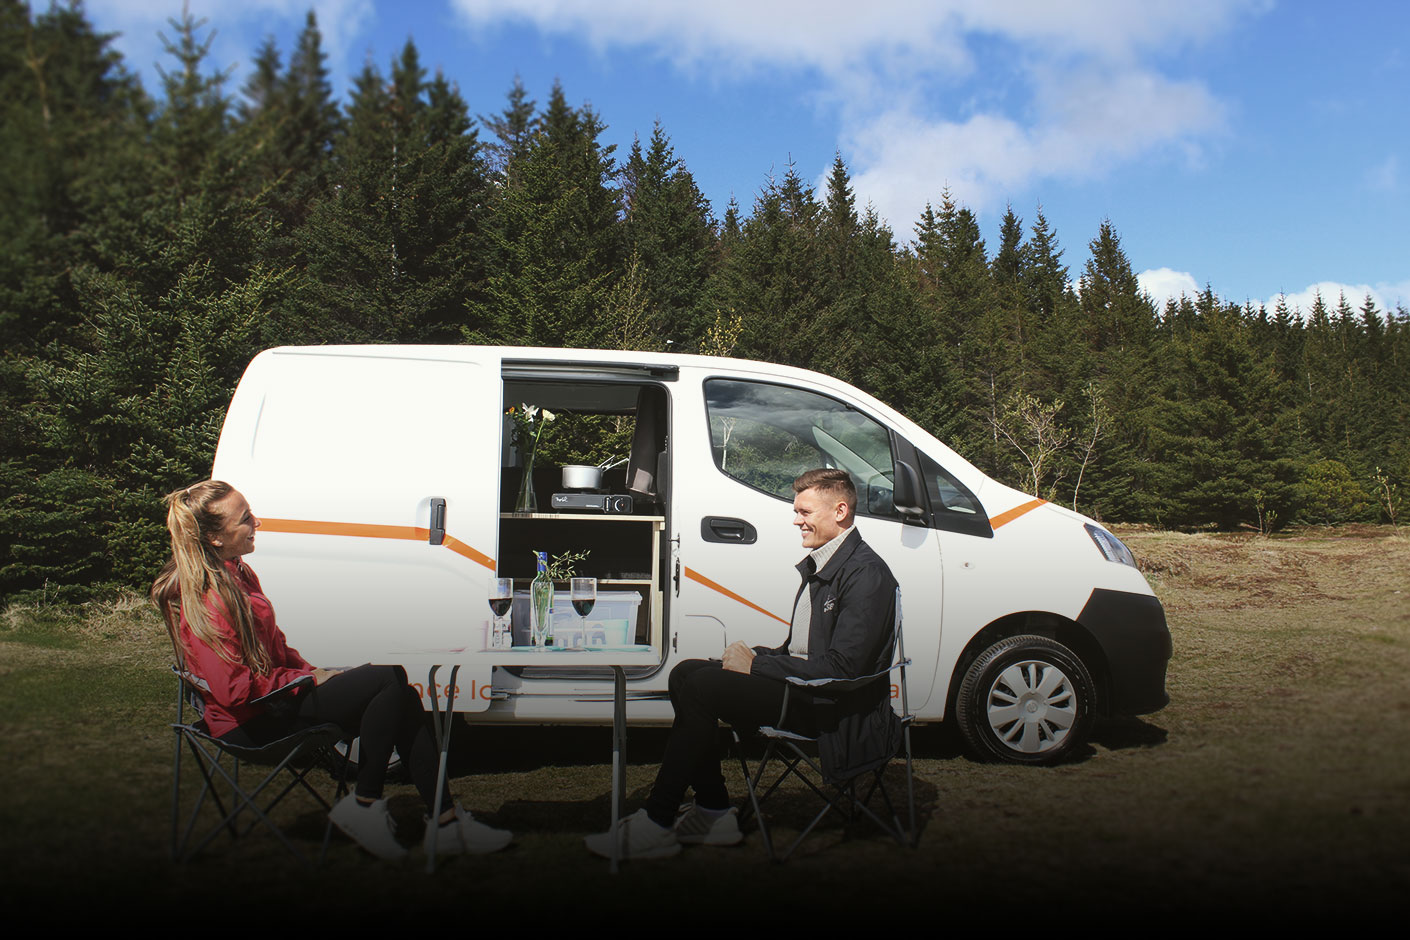 Couple Drinking Wine outside a White Camper Van with Pine Trees in the Background